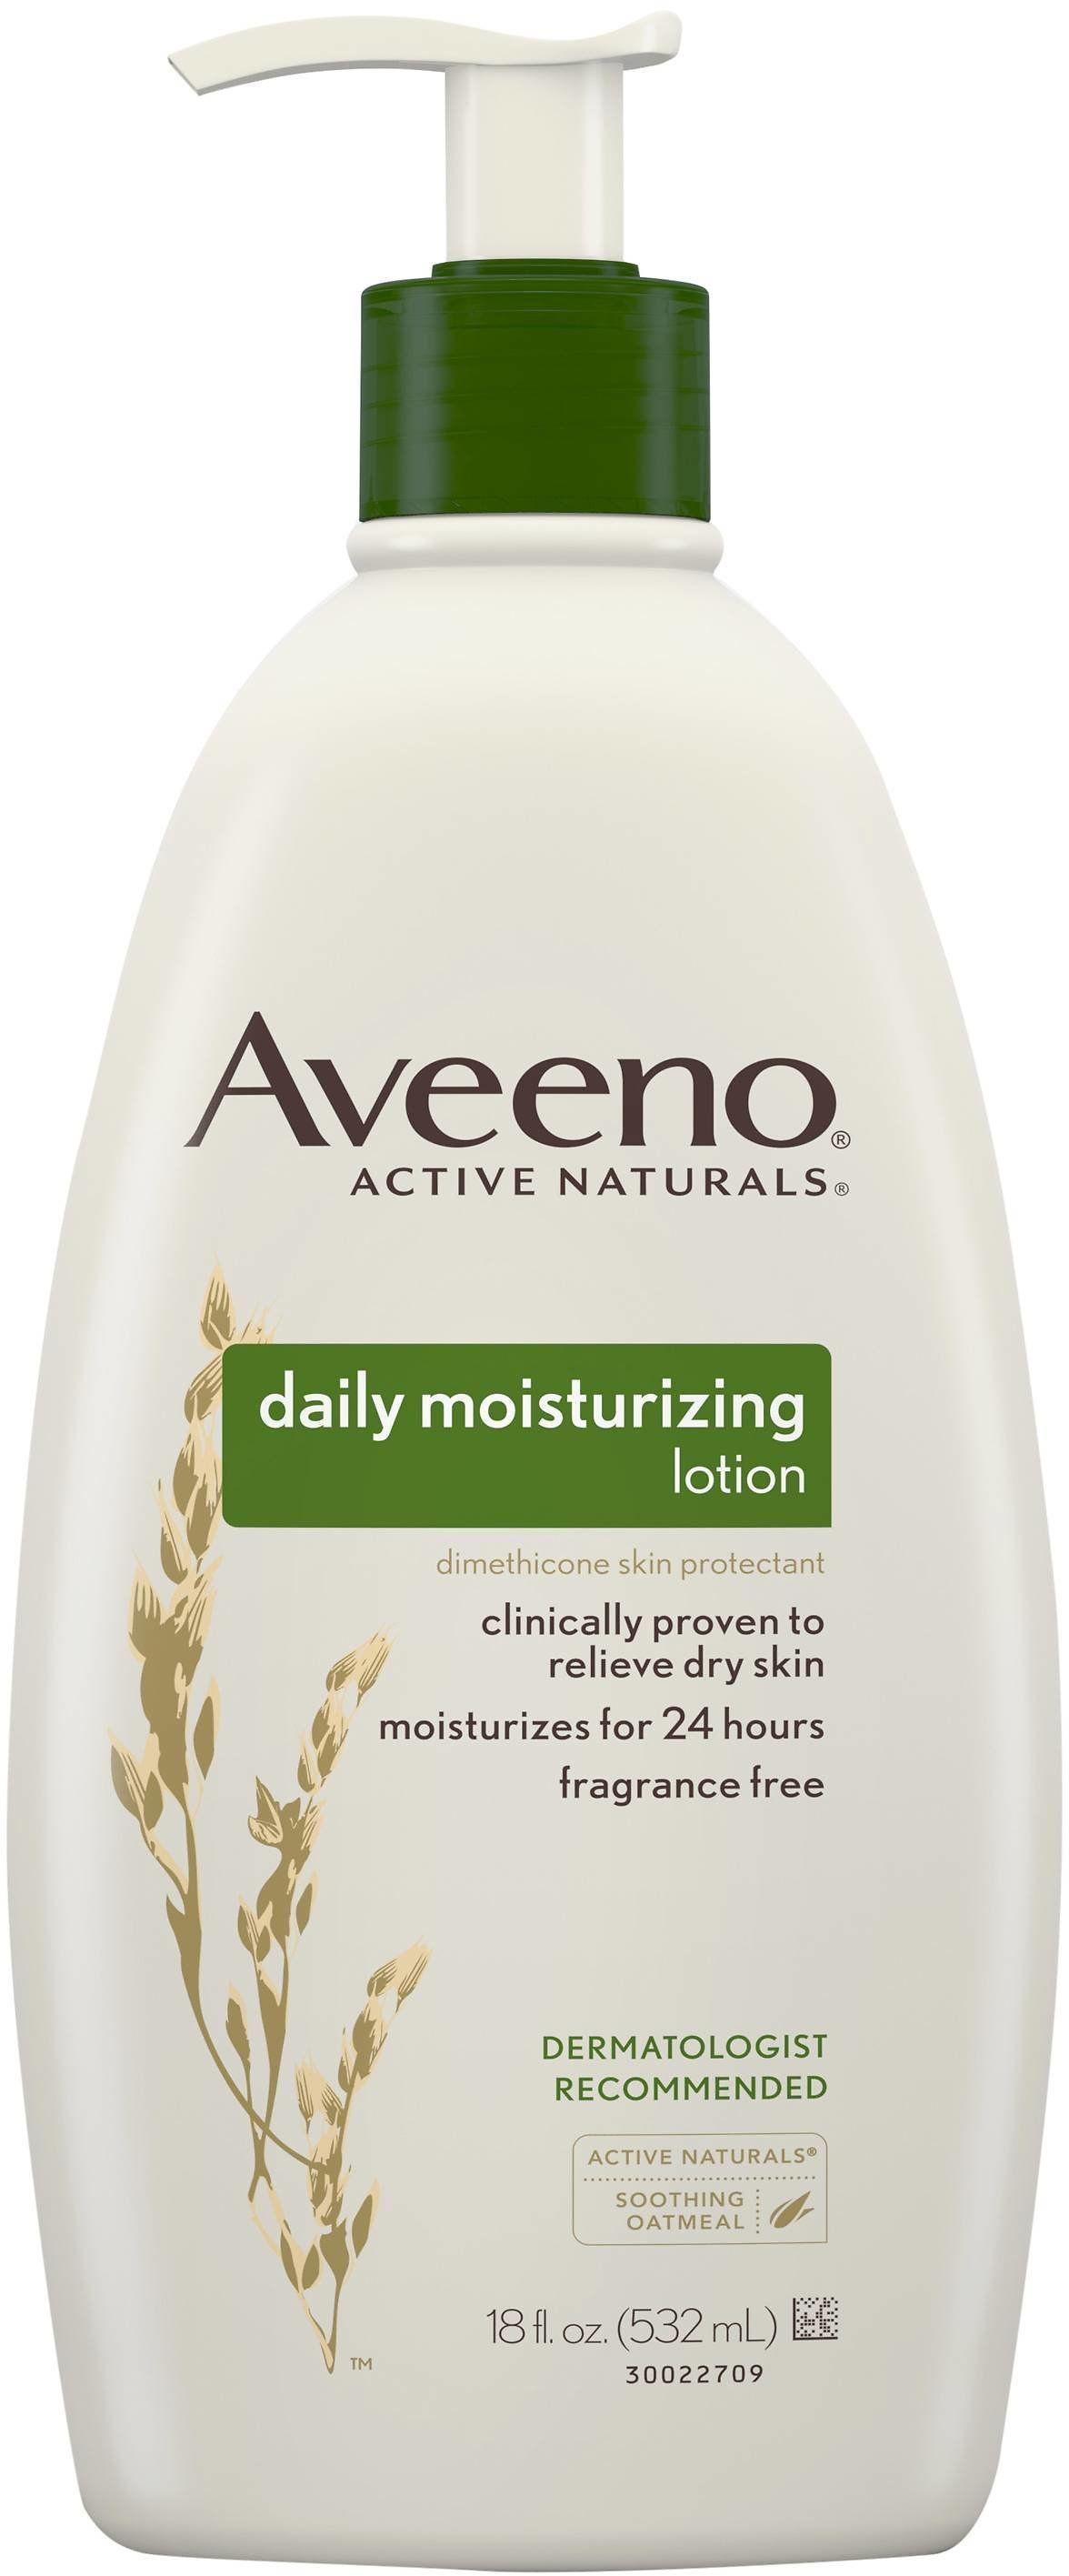 picture about Aveeno Coupon Printable identify 3) Aveeno Day by day Moisturizing Lotion For Dry Pores and skin - 18 Fl Oz